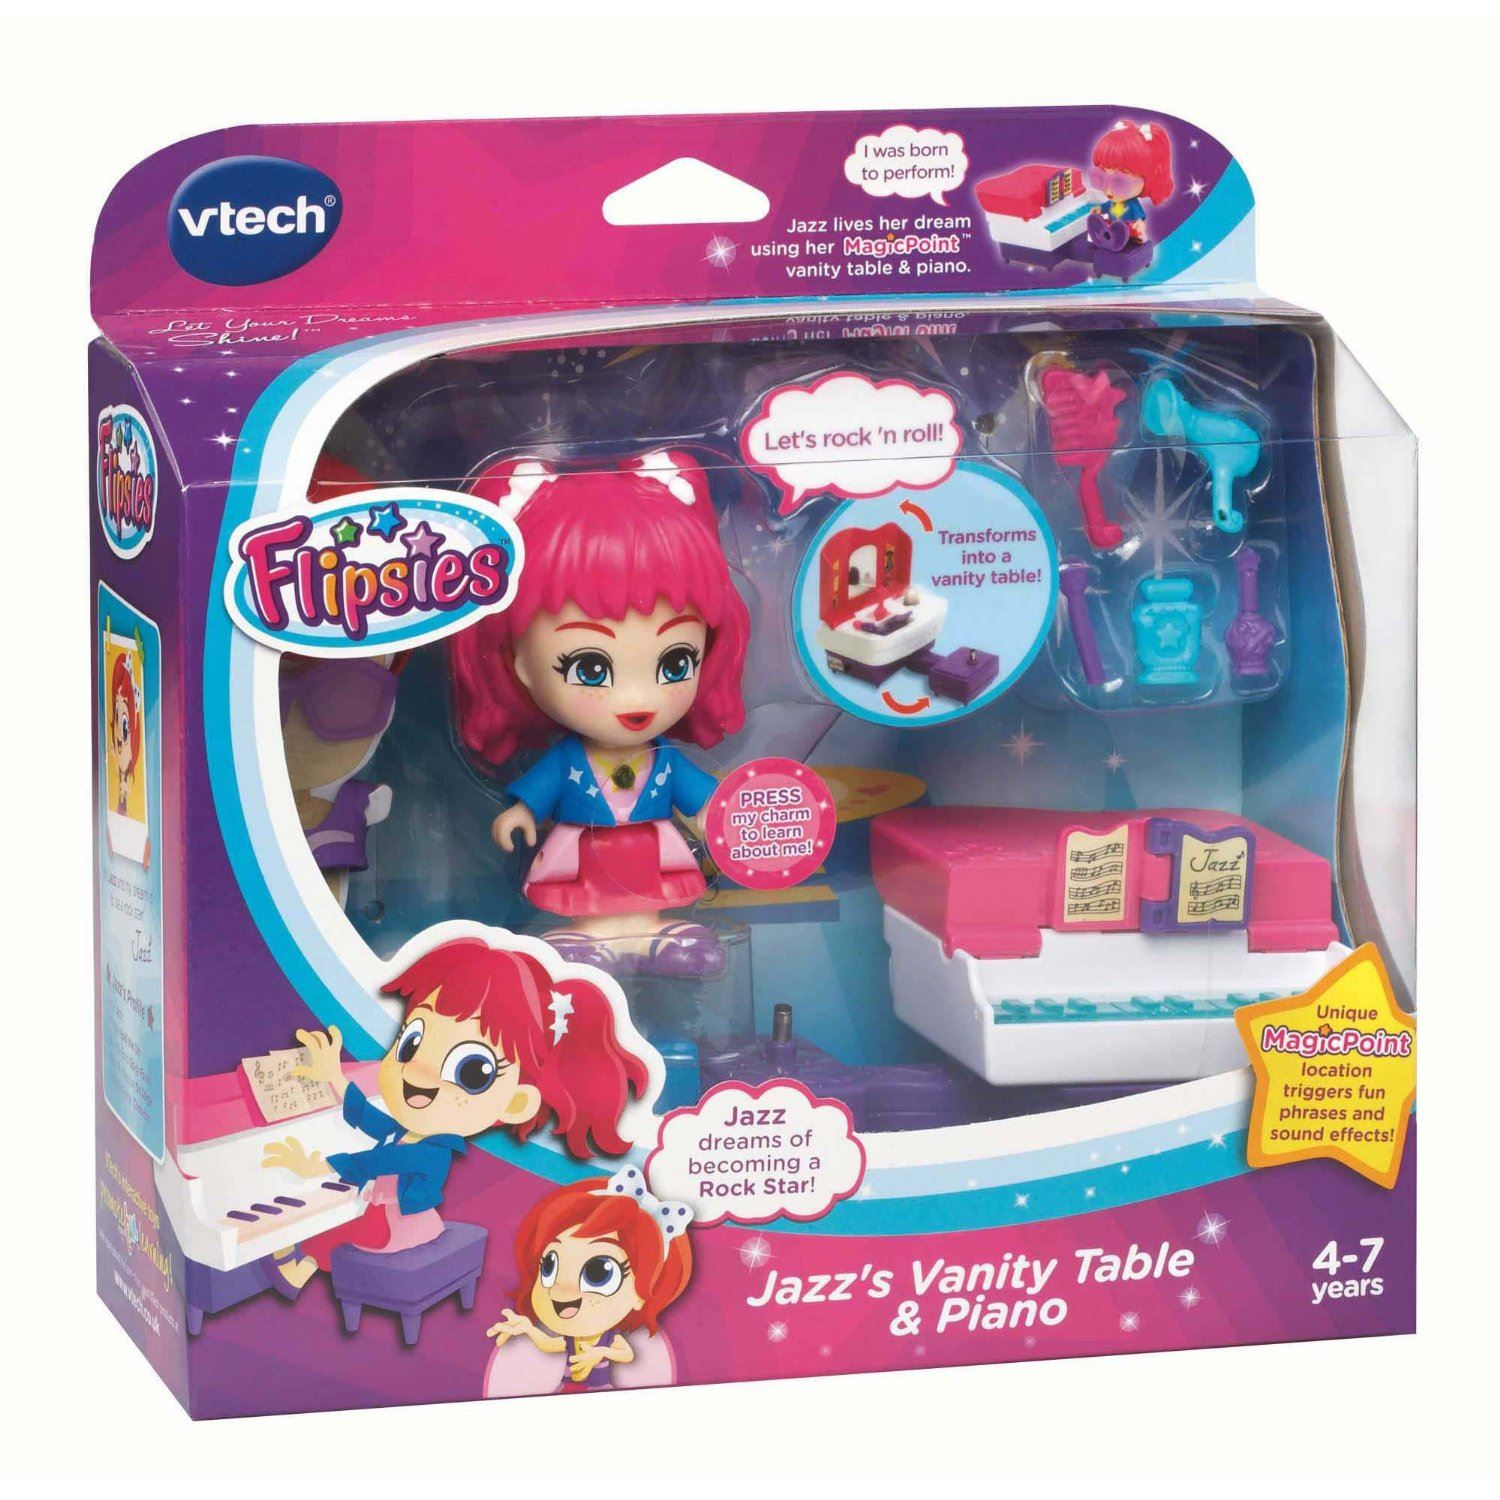 Vtech Flipsies Jazz's Vanity Table & Piano